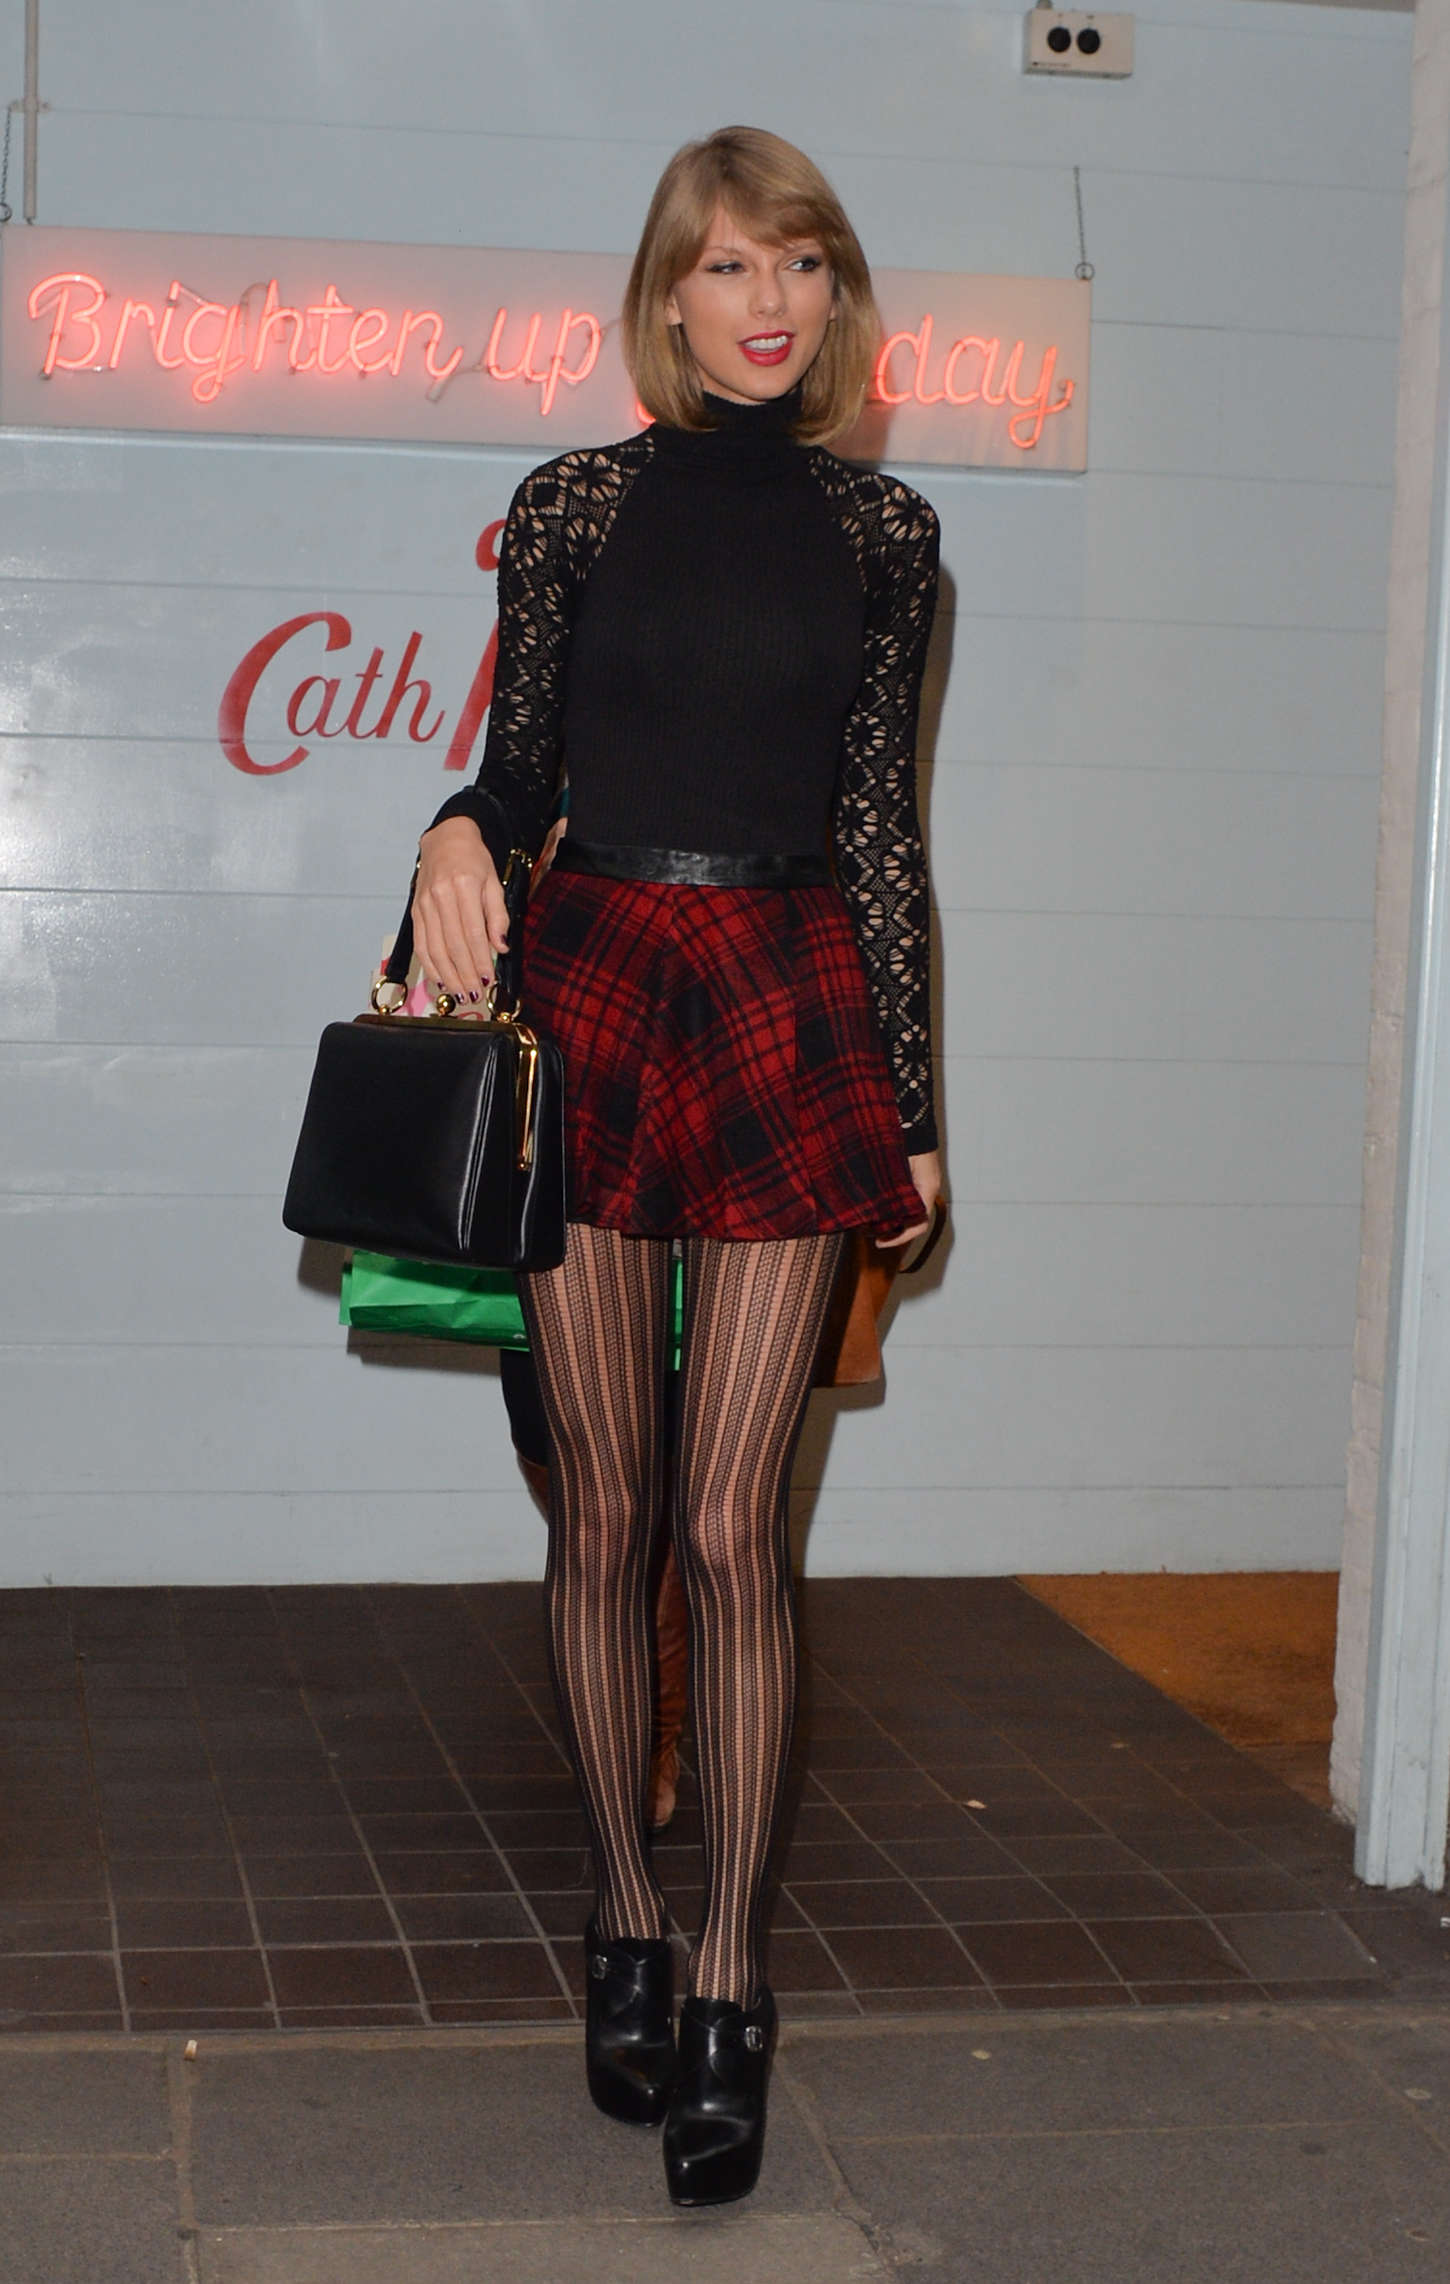 Taylor Swift 2014 : Taylor Swift in Mini Skirt at Cath Kidston -10